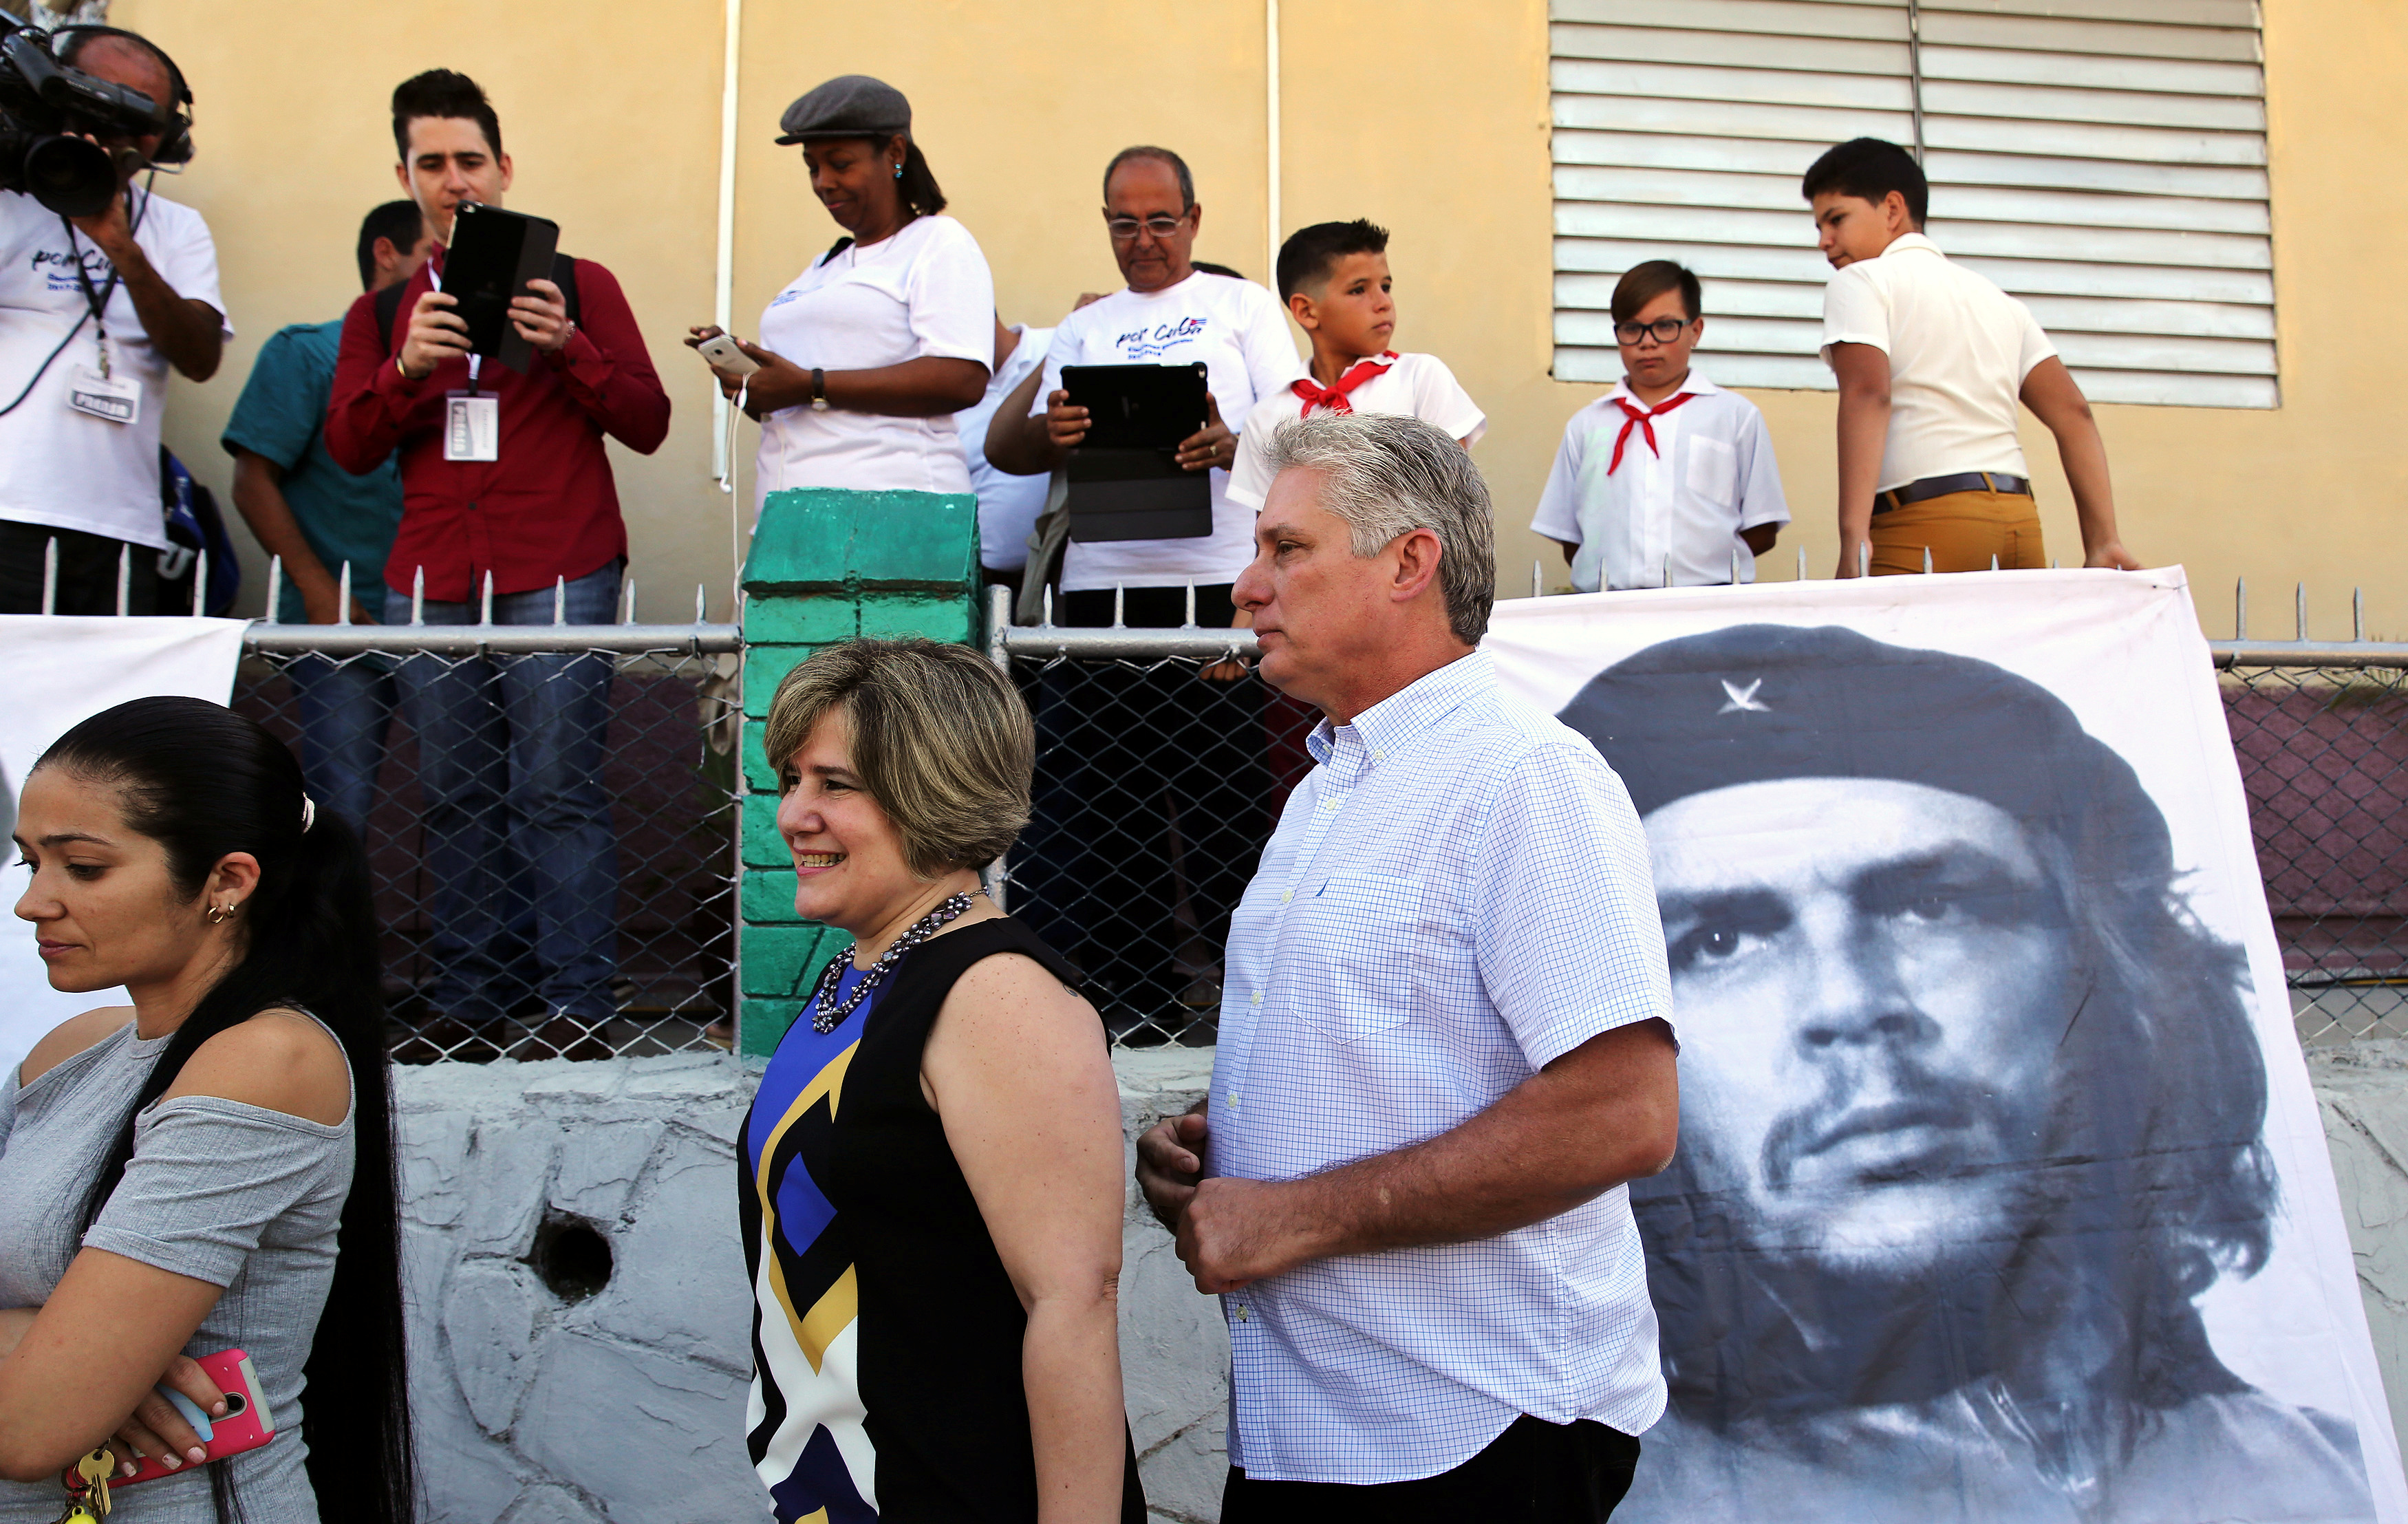 Cuba's First Vice-President Miguel Diaz-Canel and his wife Lis Cuesta stand in line before Diaz-Canel casts his vote during an election of candidates for the national and provincial assemblies, in Santa Clara Cuba March 11, 2018. REUTERS/Alejandro Ernesto/Pool - RC18443D7C80